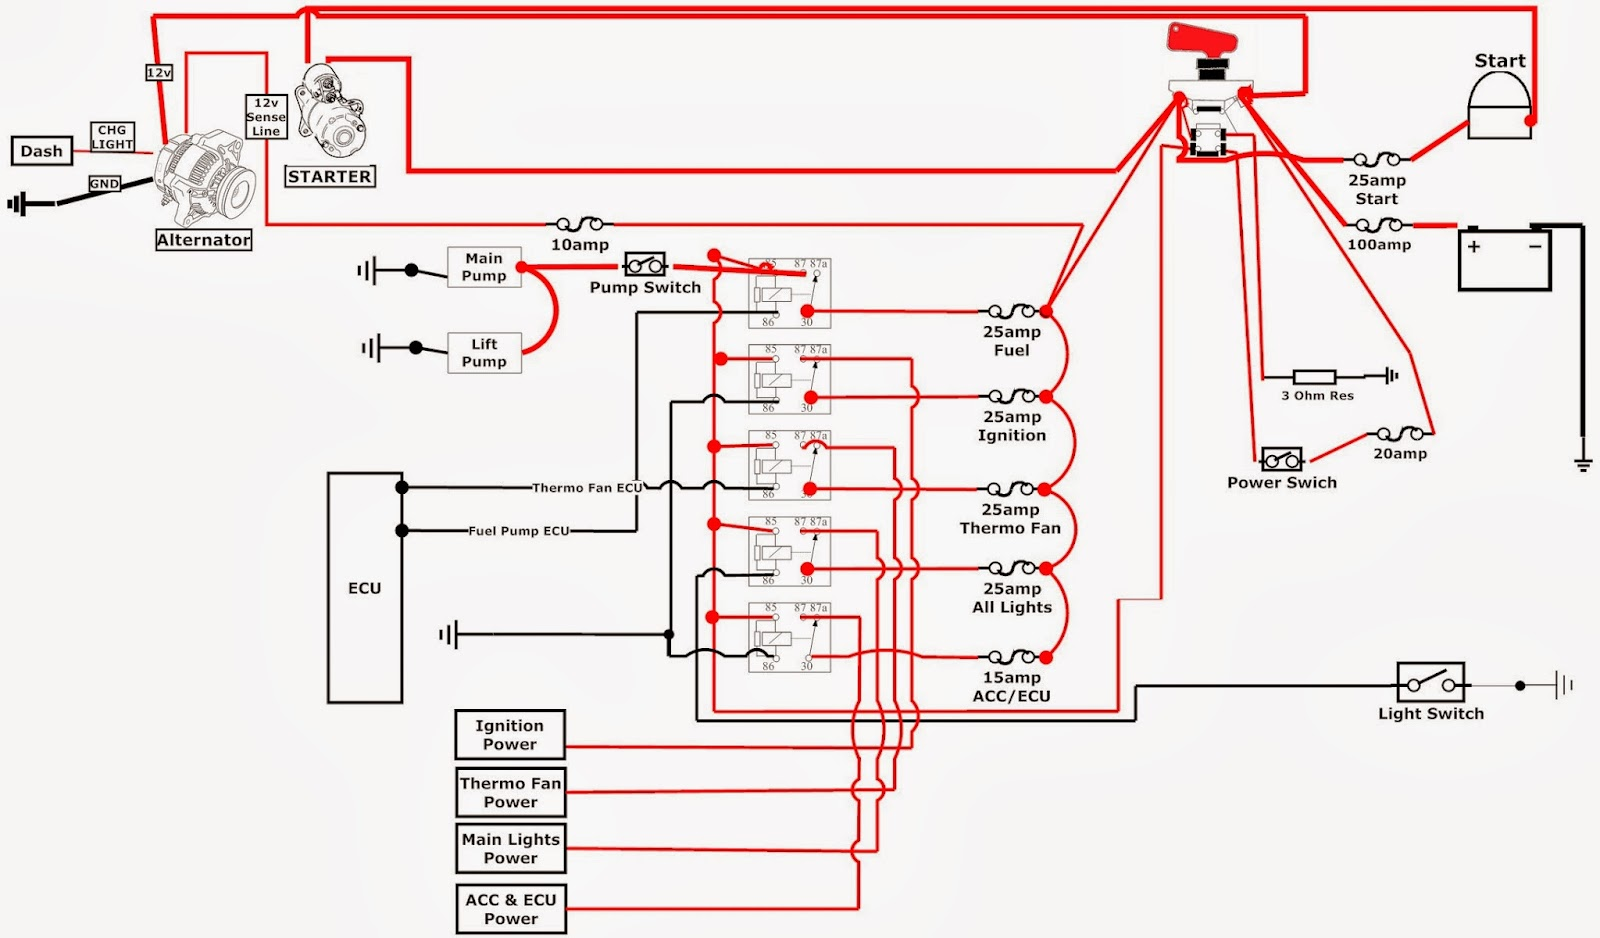 wiring diargram power nissan 200sx wiring diagram 100 images nissan 200sx ignition s15 wiring [ 1600 x 938 Pixel ]